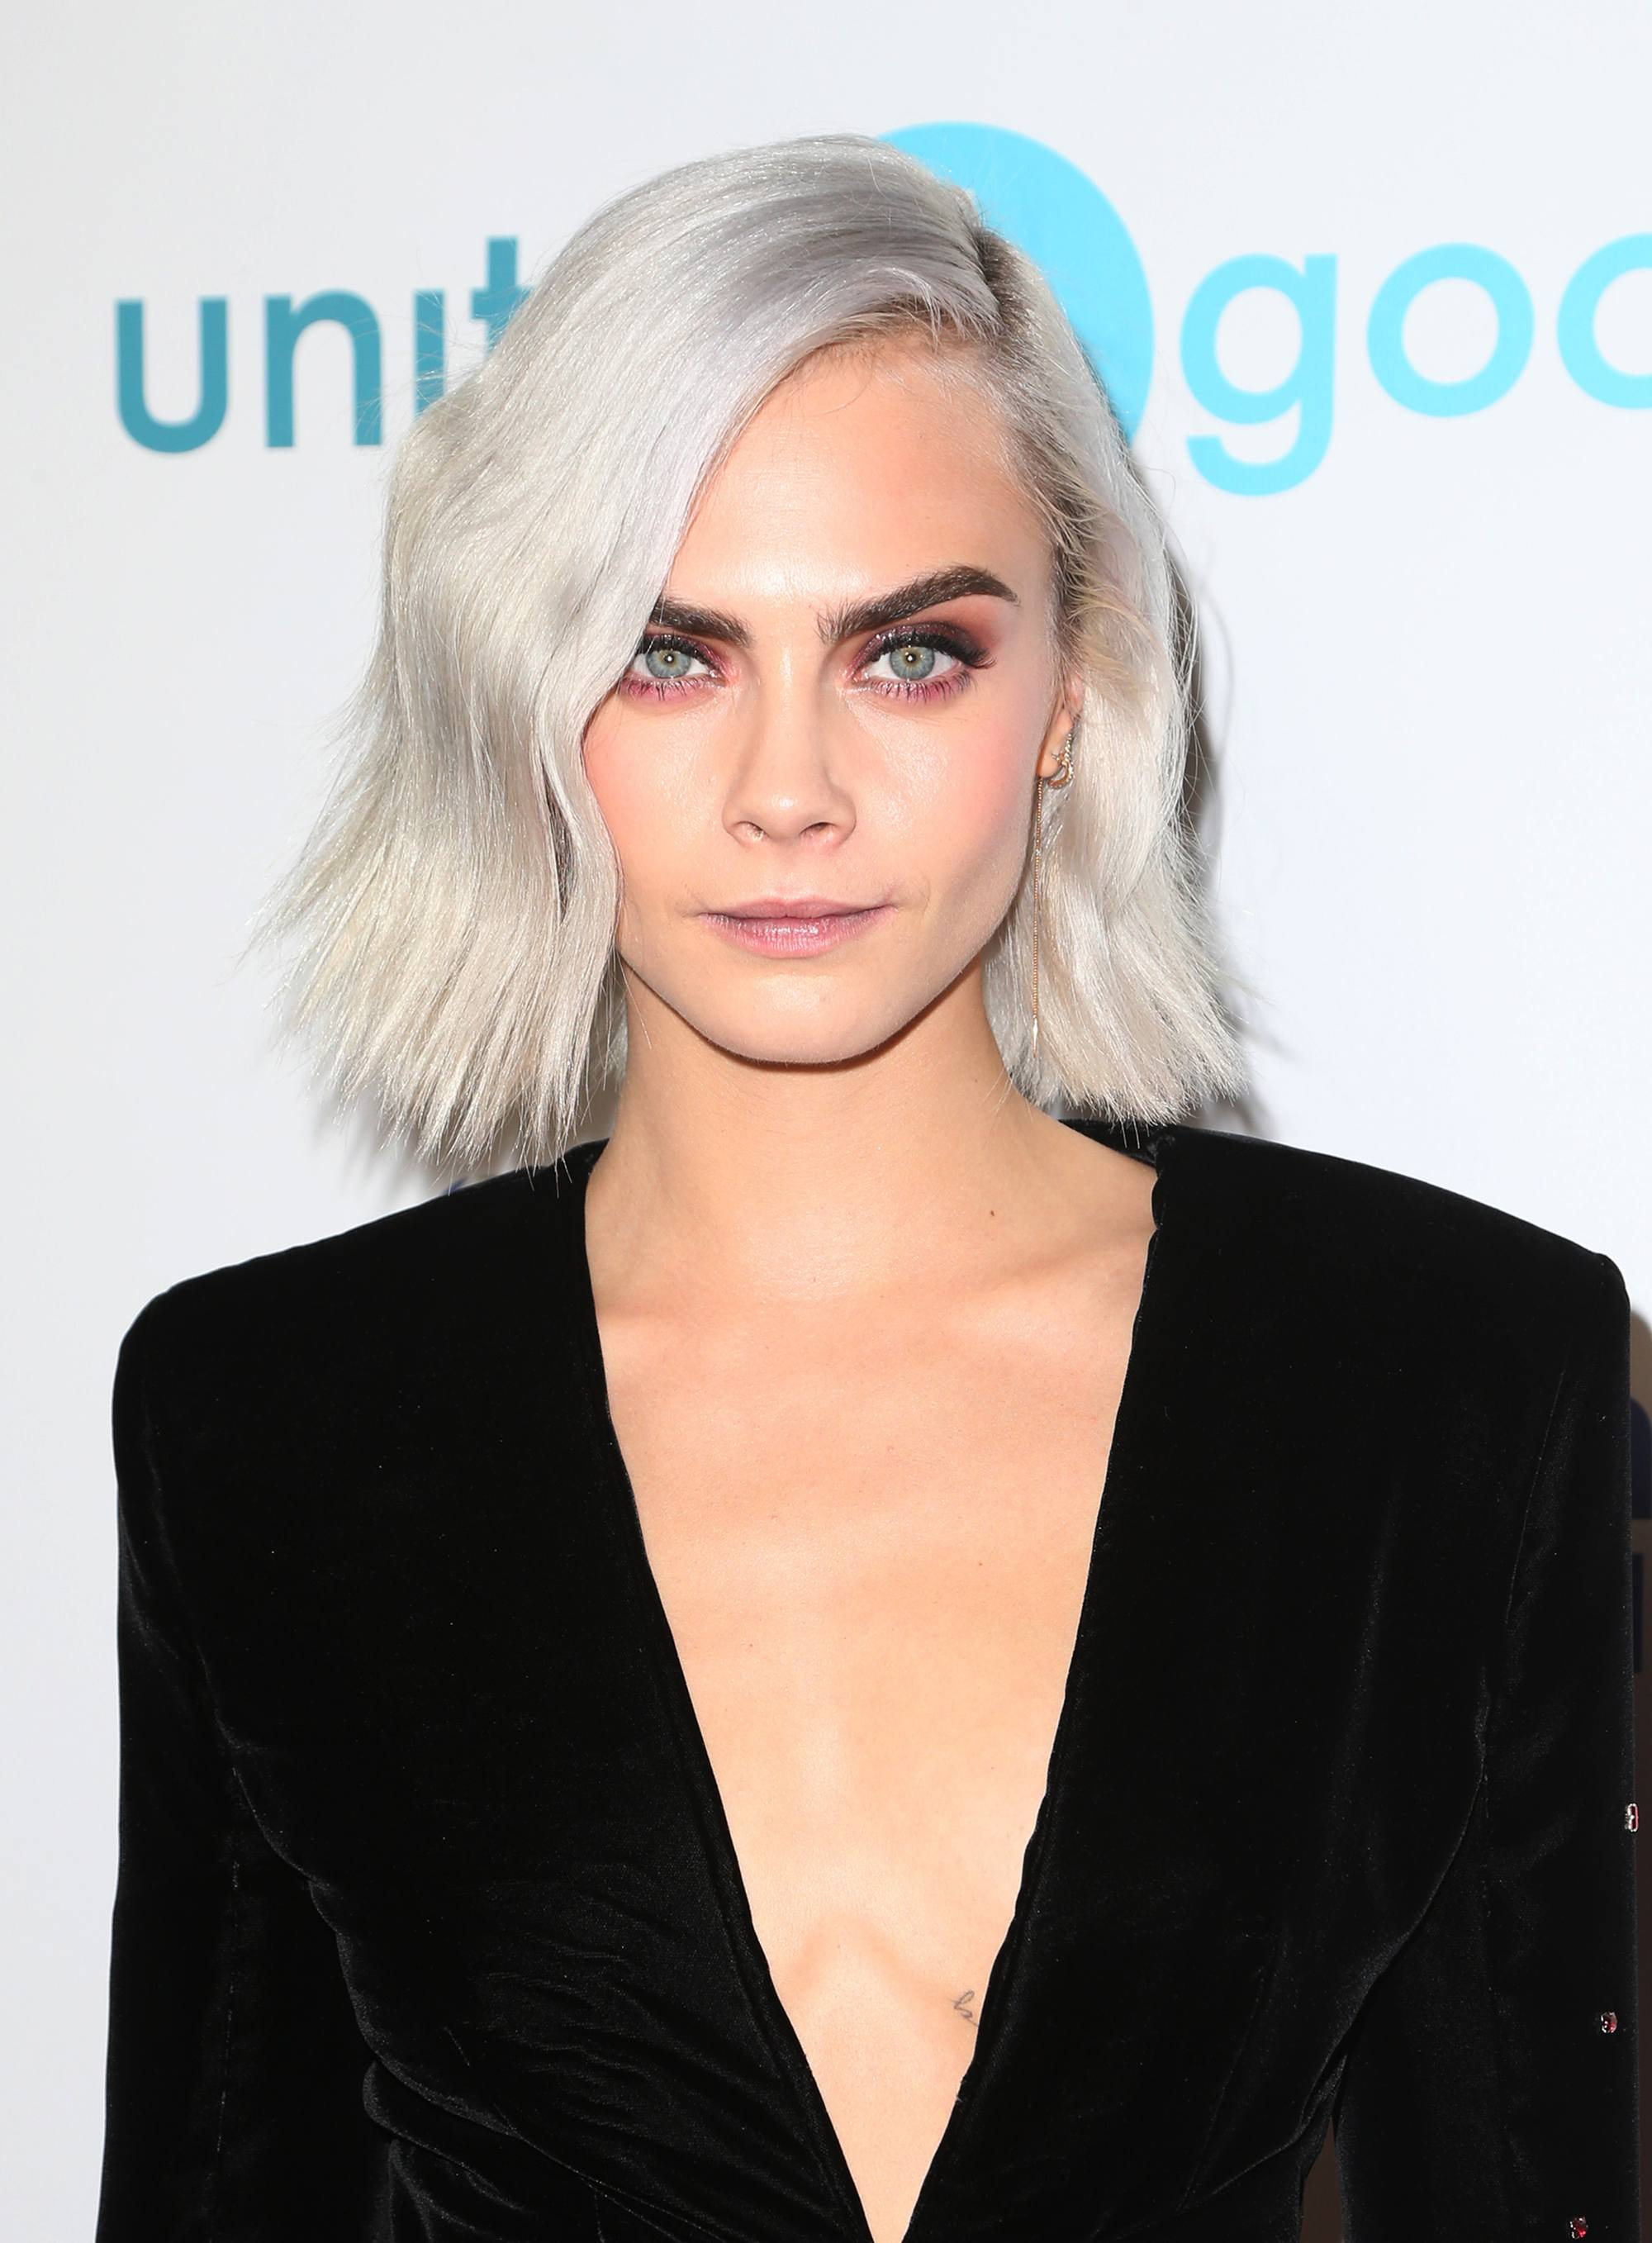 Cara Delevingne with a wavy grey bob